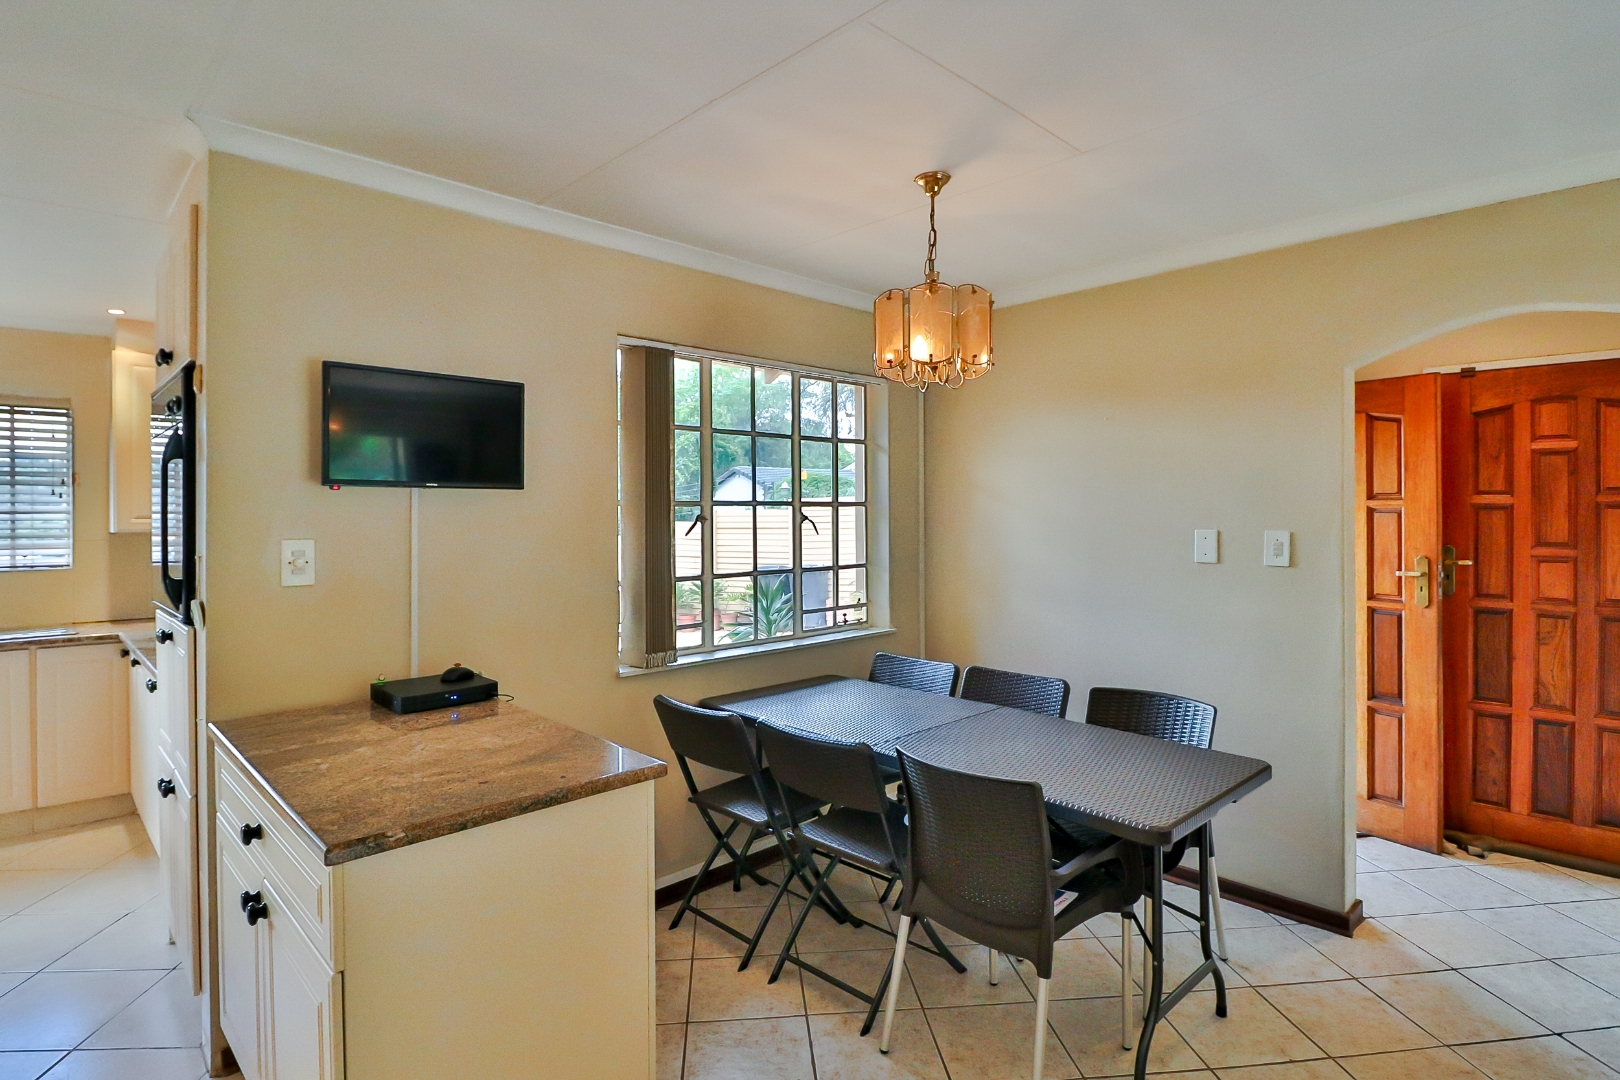 4 Bedroom House For Sale in Randpark Ridge